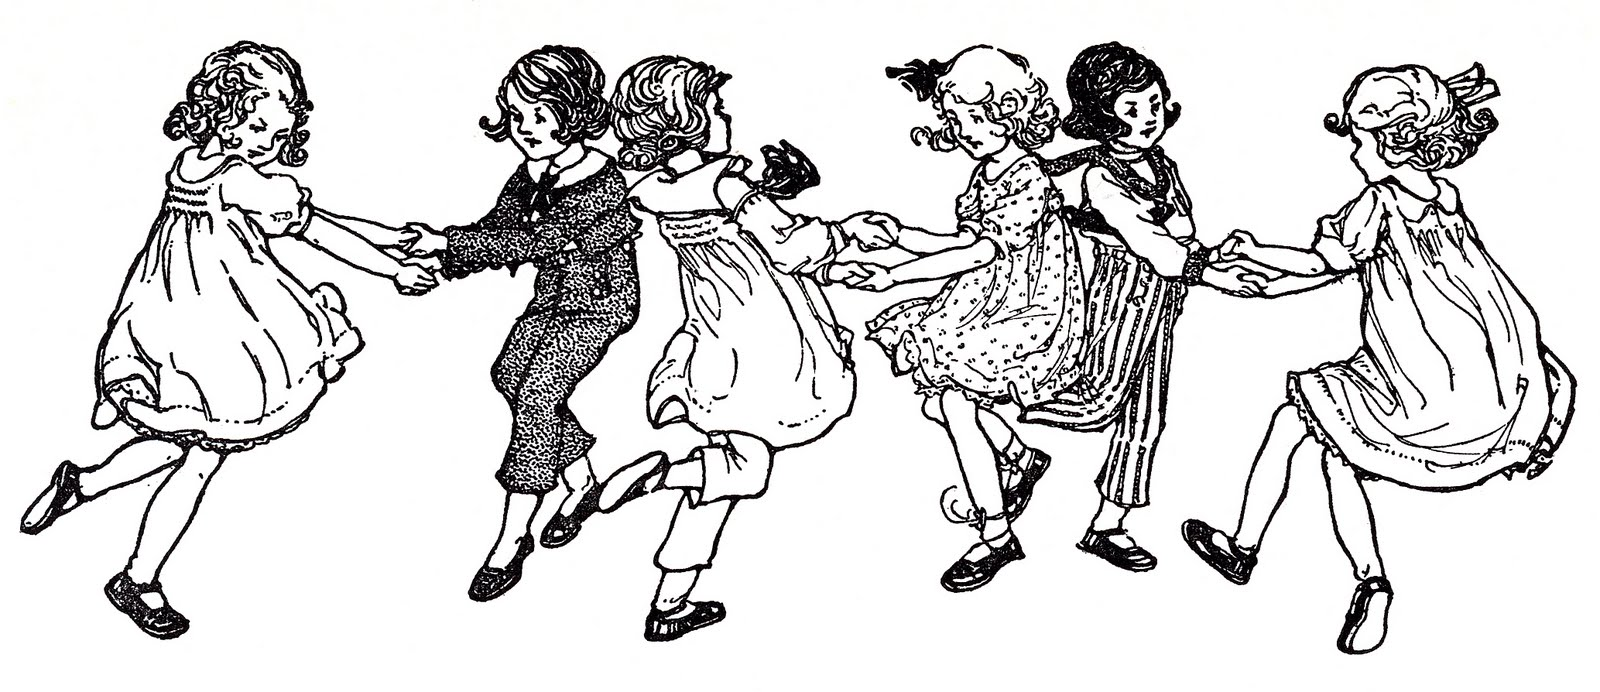 Dancing clipart children's. Vintage image children swedish